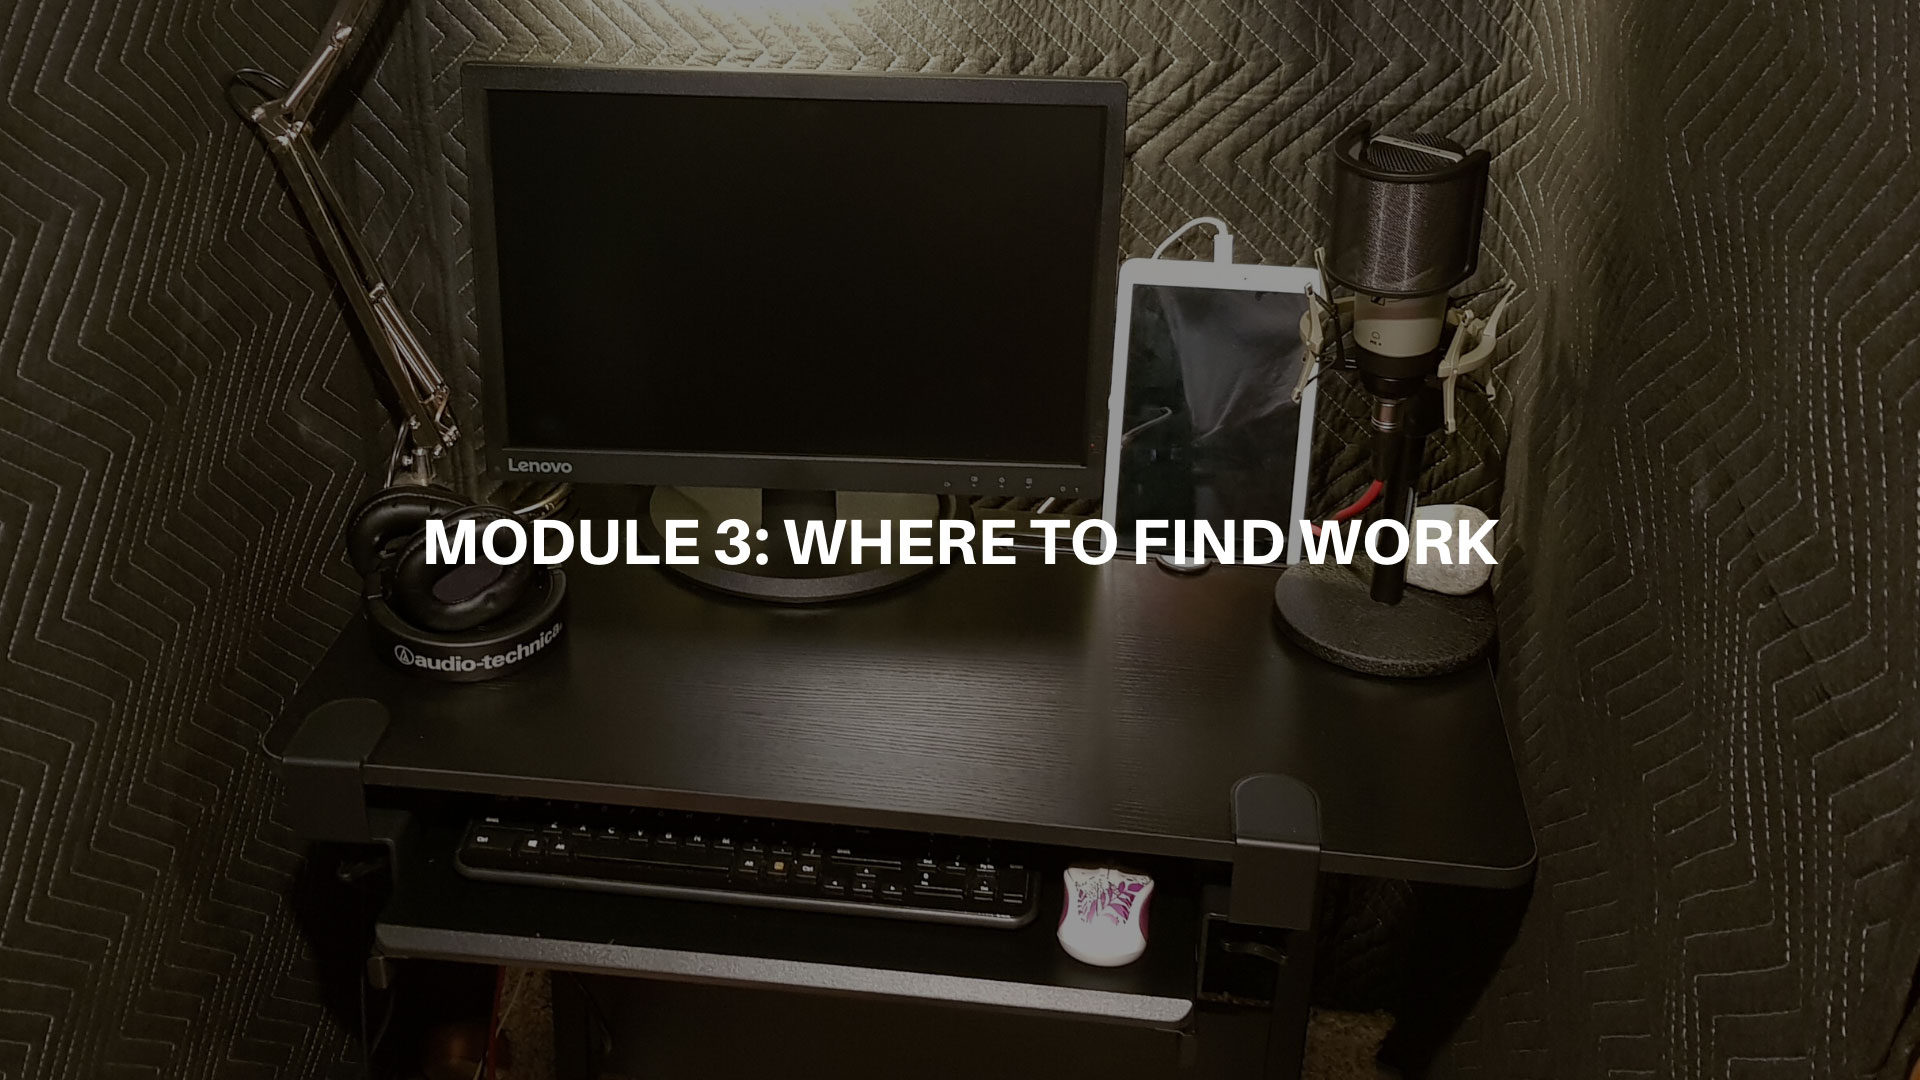 Module 3 - Where to Find Work